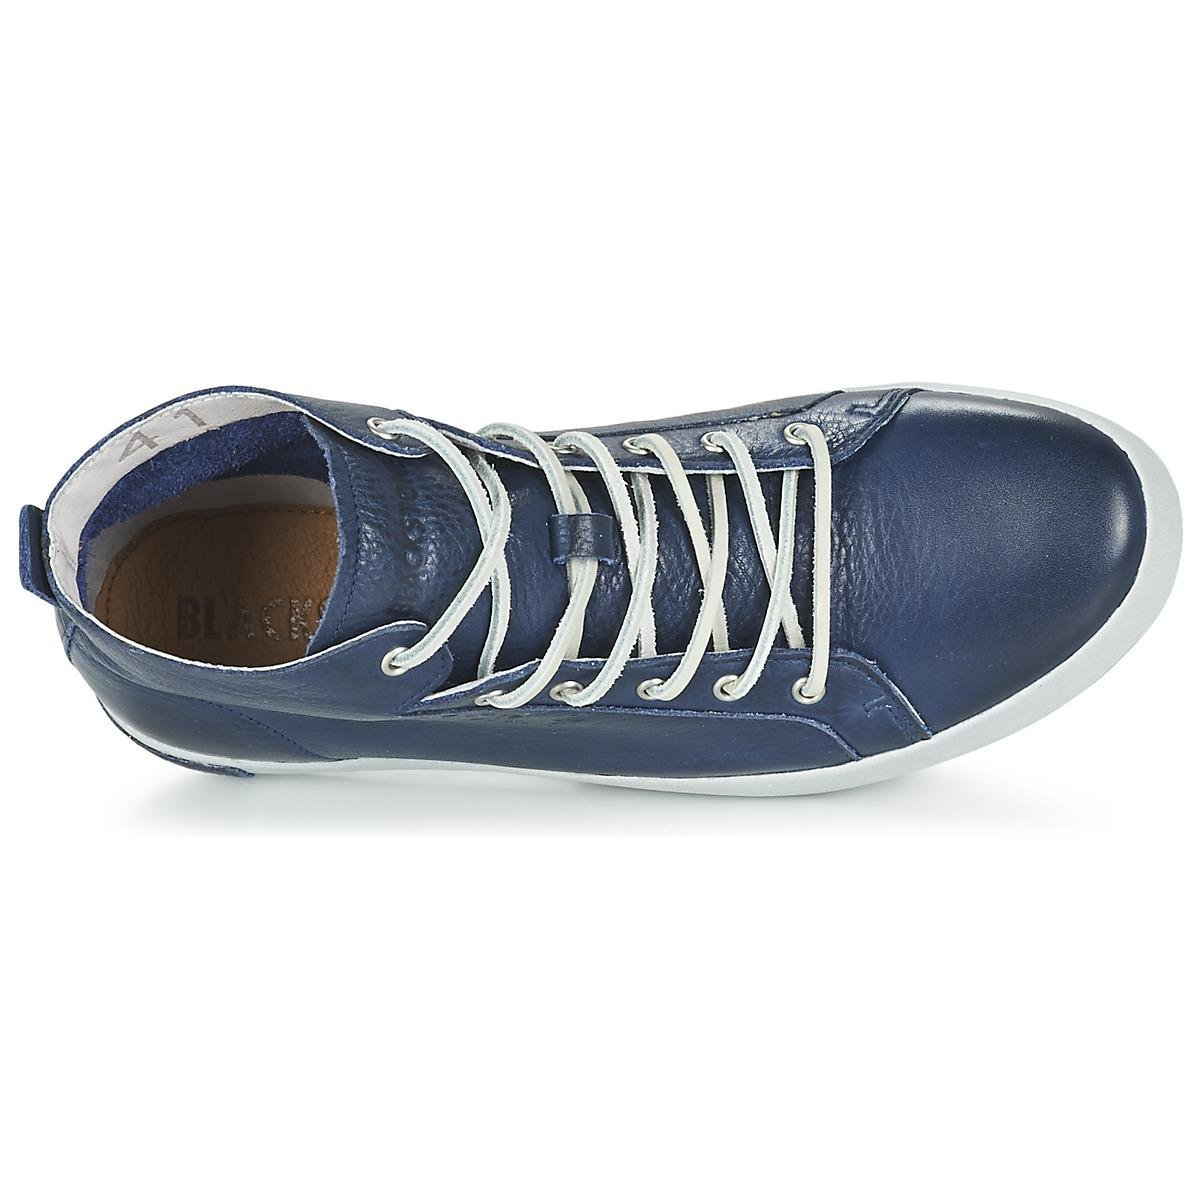 Blackstone Leather Jm03 Shoes (high-top Trainers) in Blue for Men